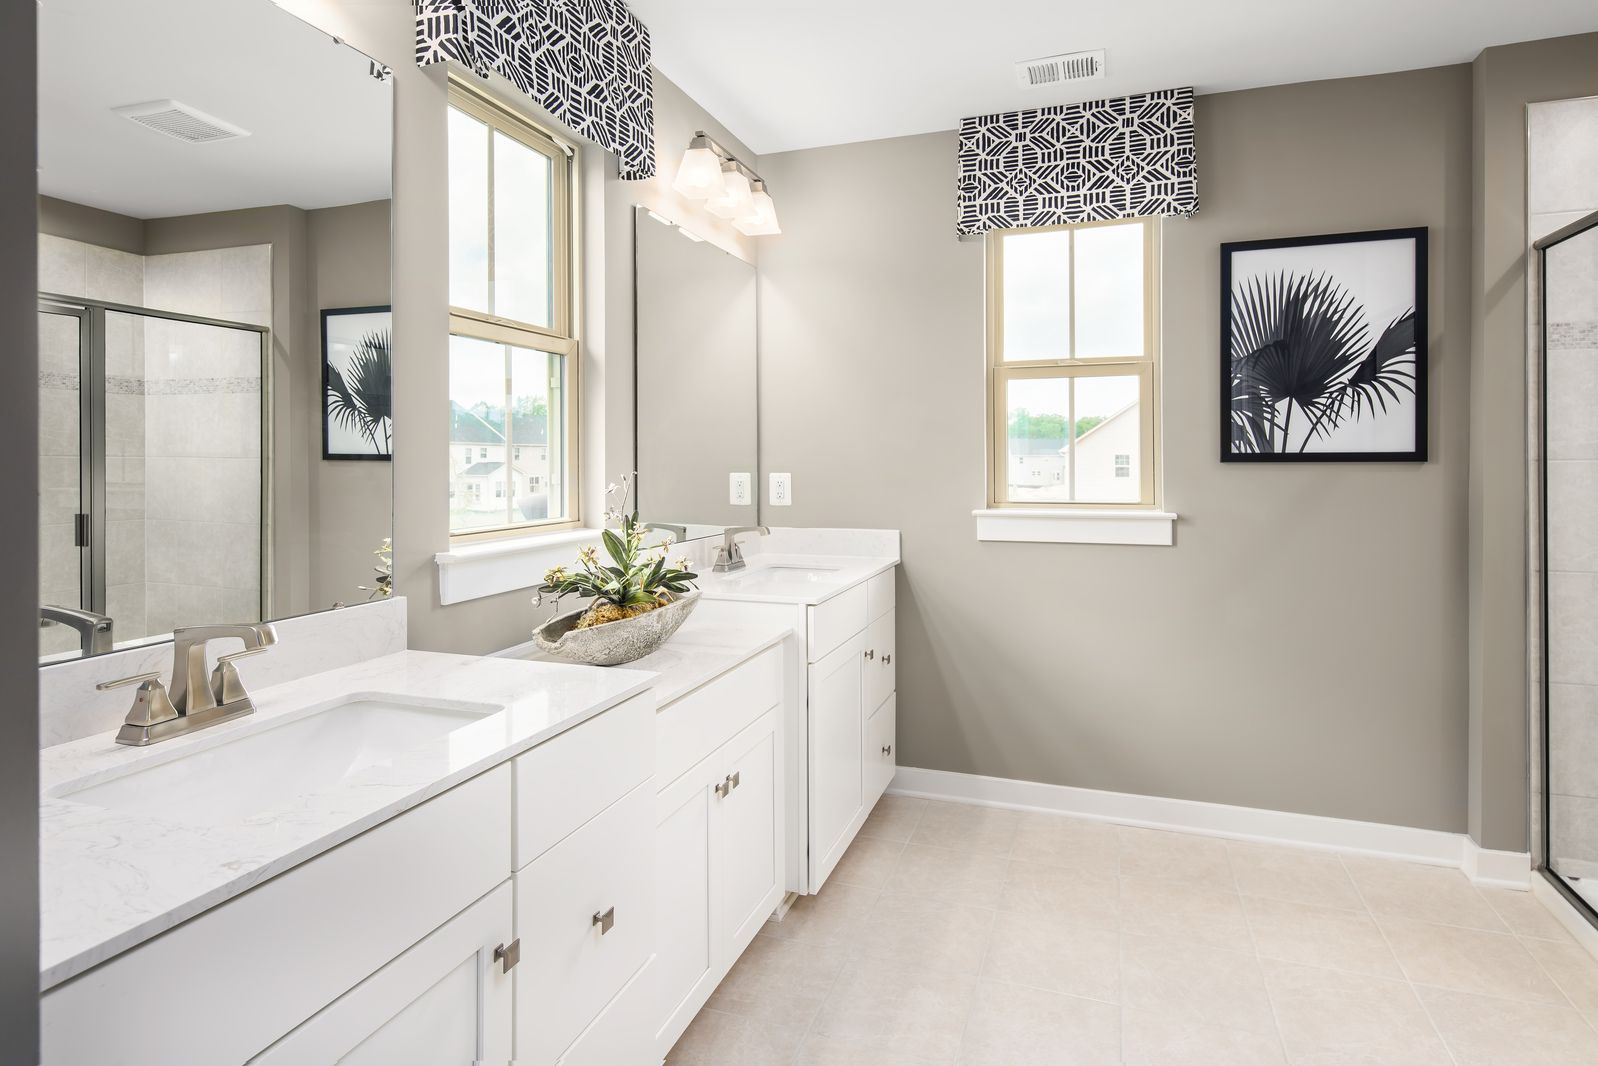 Bathroom featured in the Roanoke By Ryan Homes in Washington, MD